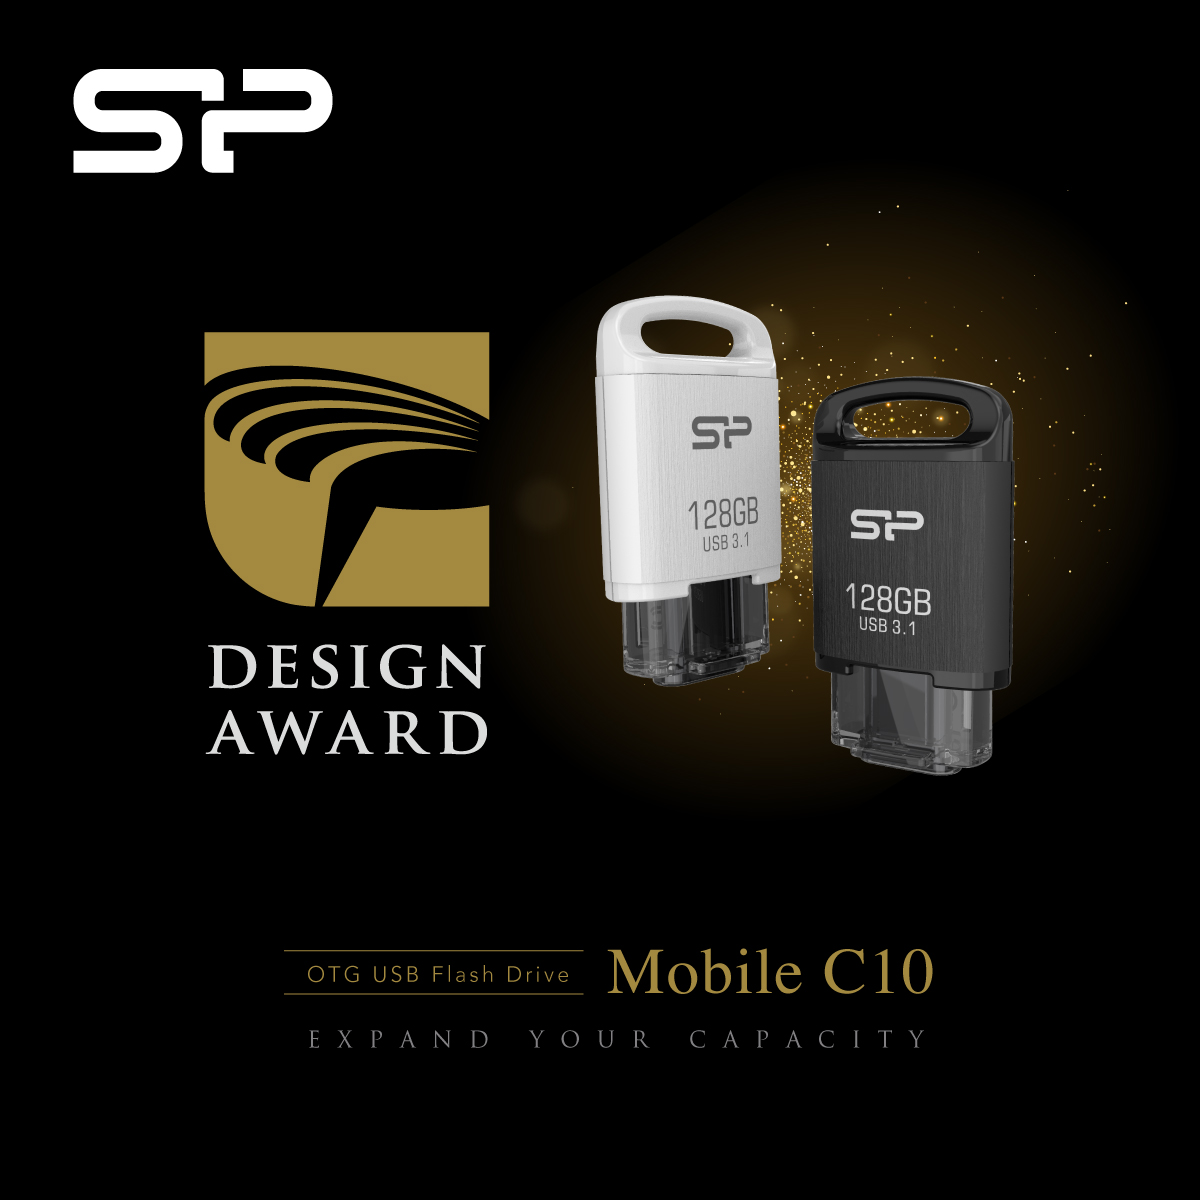 Mobile C10 Flash Drive Wins Coveted Golden Pin Design Award